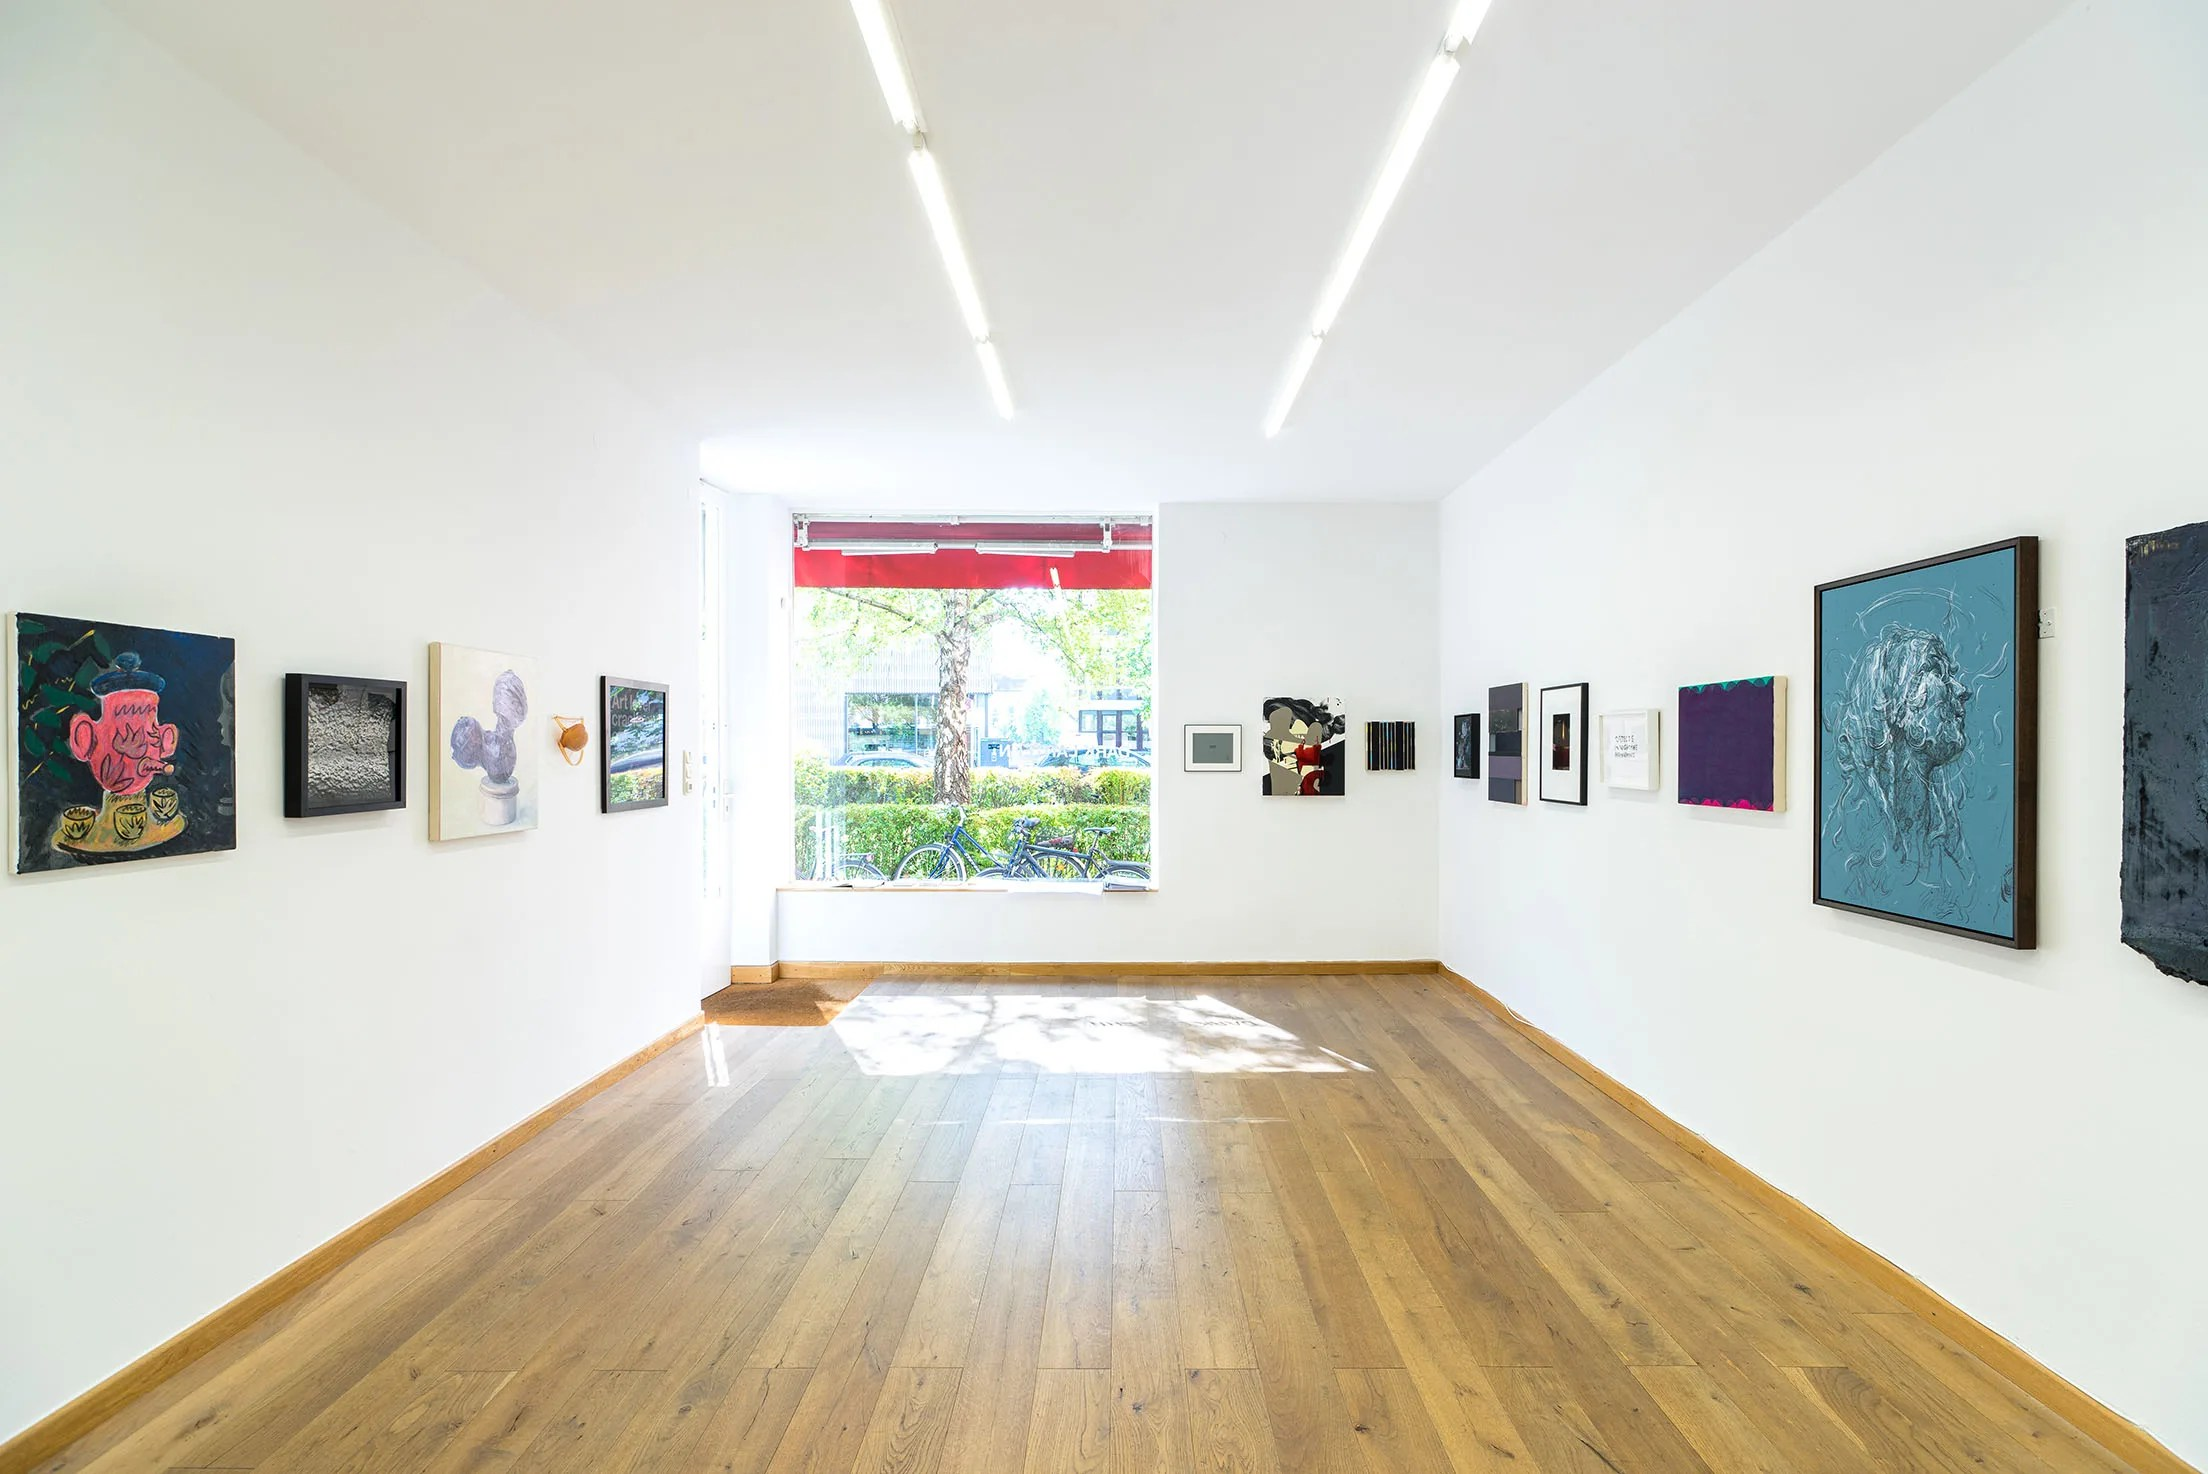 DARK LANTERN installation view, 2019